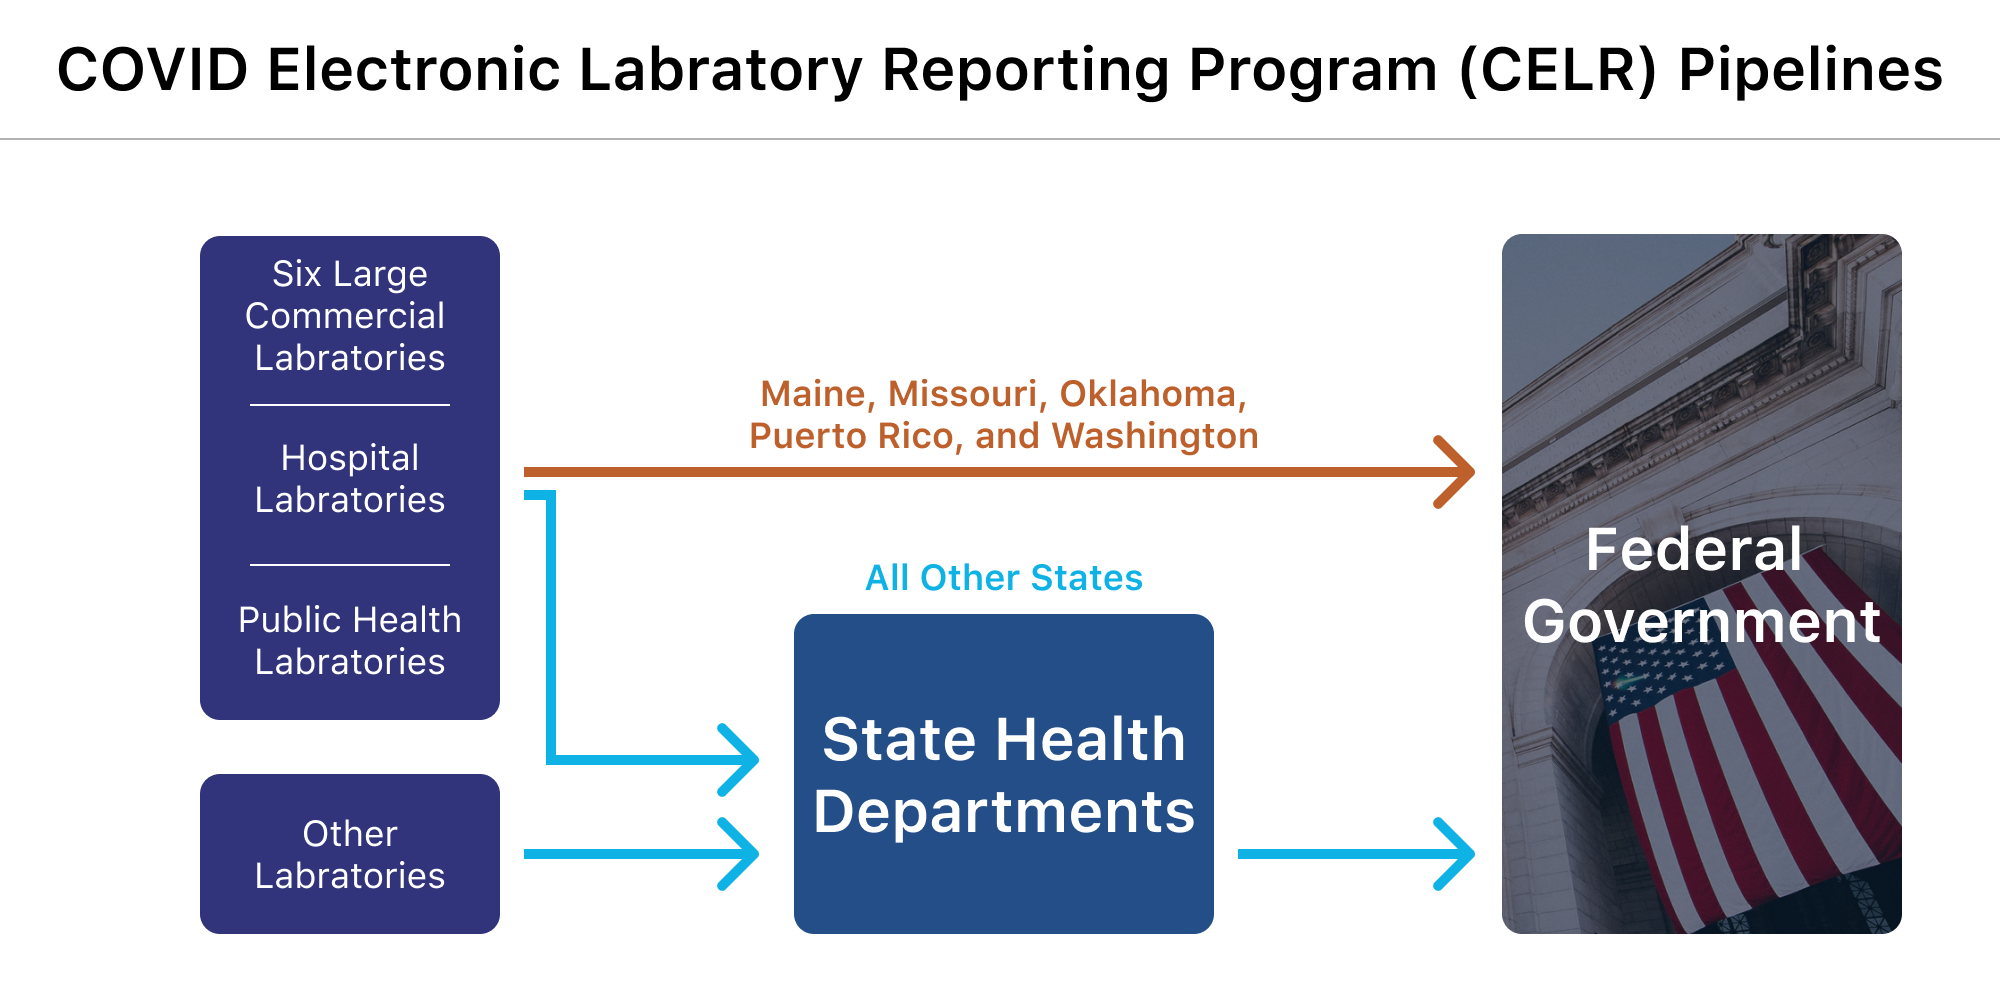 A flowchart shows the path of testing data from laboratories to the federal government. In five states—Maine, Missouri, Oklahoma, Puerto Rico, and Washington—the data flows directly from a portion of laboratories to the federal government. In all other states, the data goes from laboratories to the state health department before making its way to the federal government.